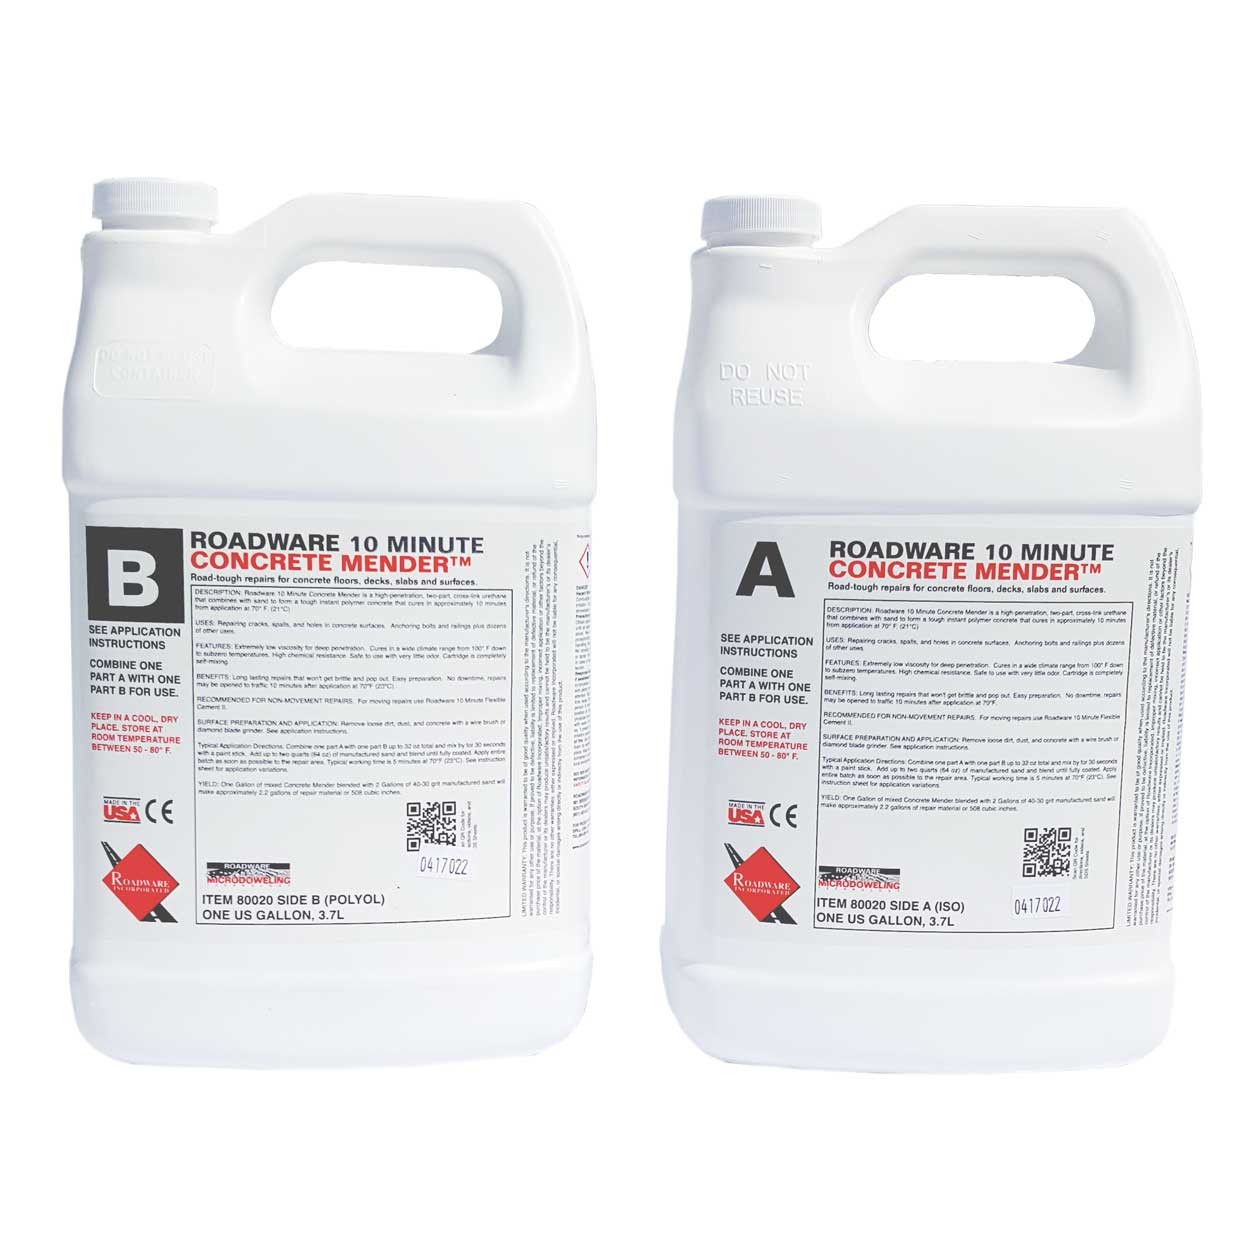 Roadware 10 Minute Concrete Mender 2 Gallon 80020